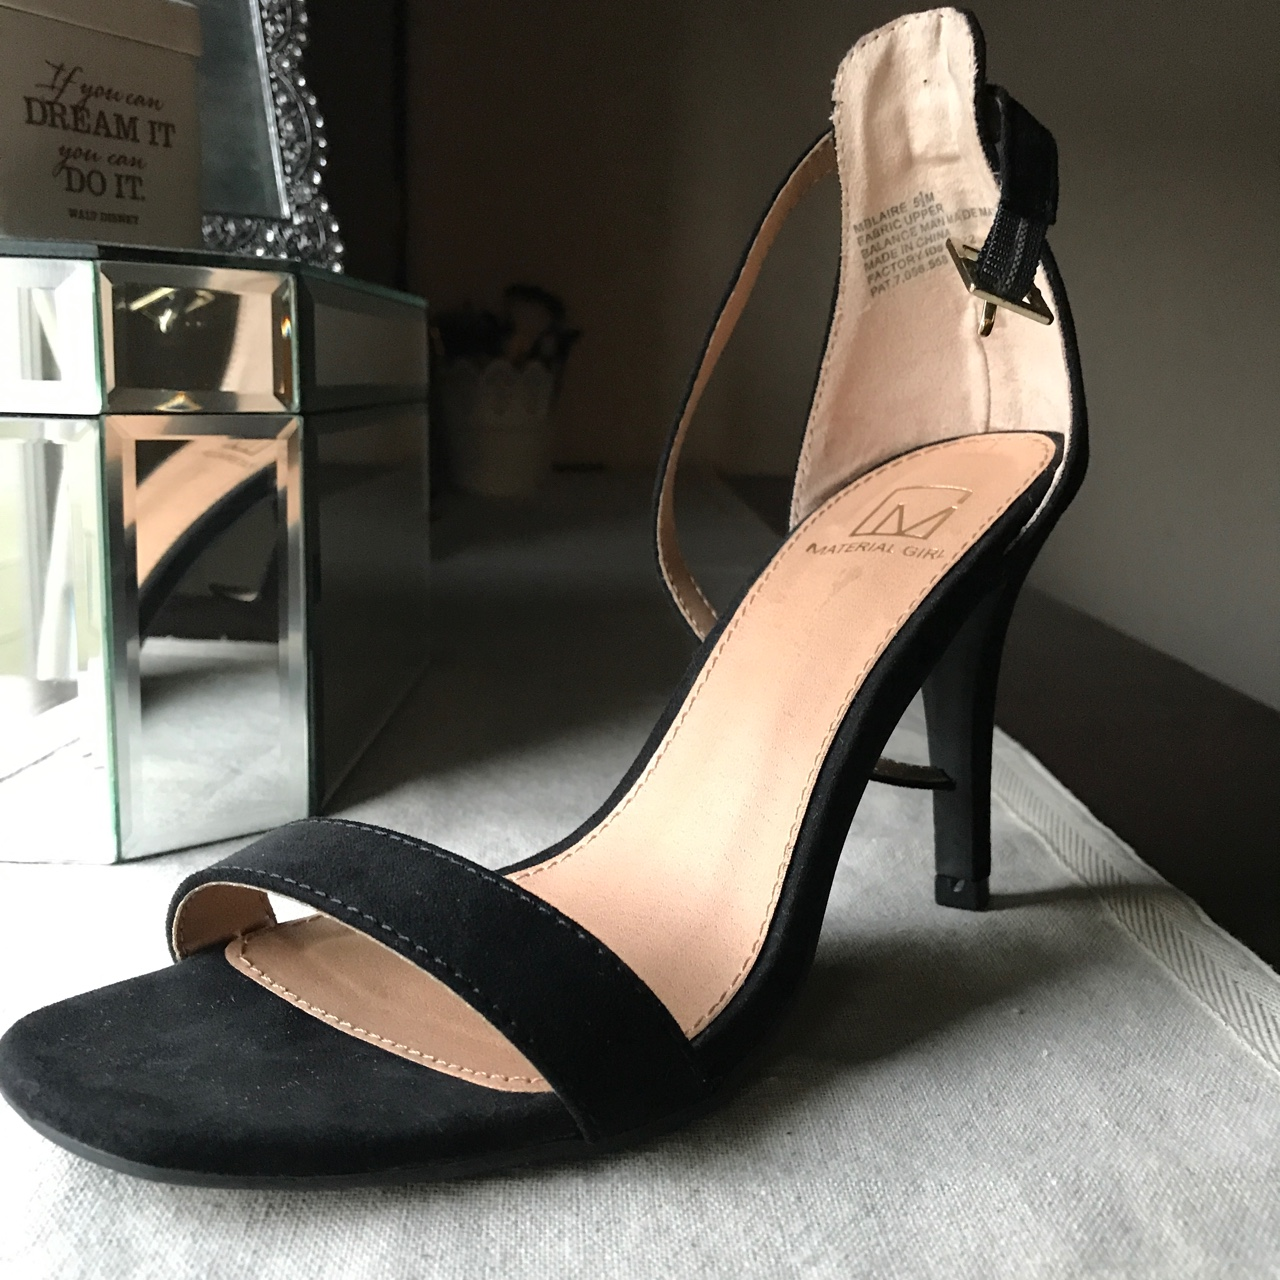 Material Girl black heels👡 Only used